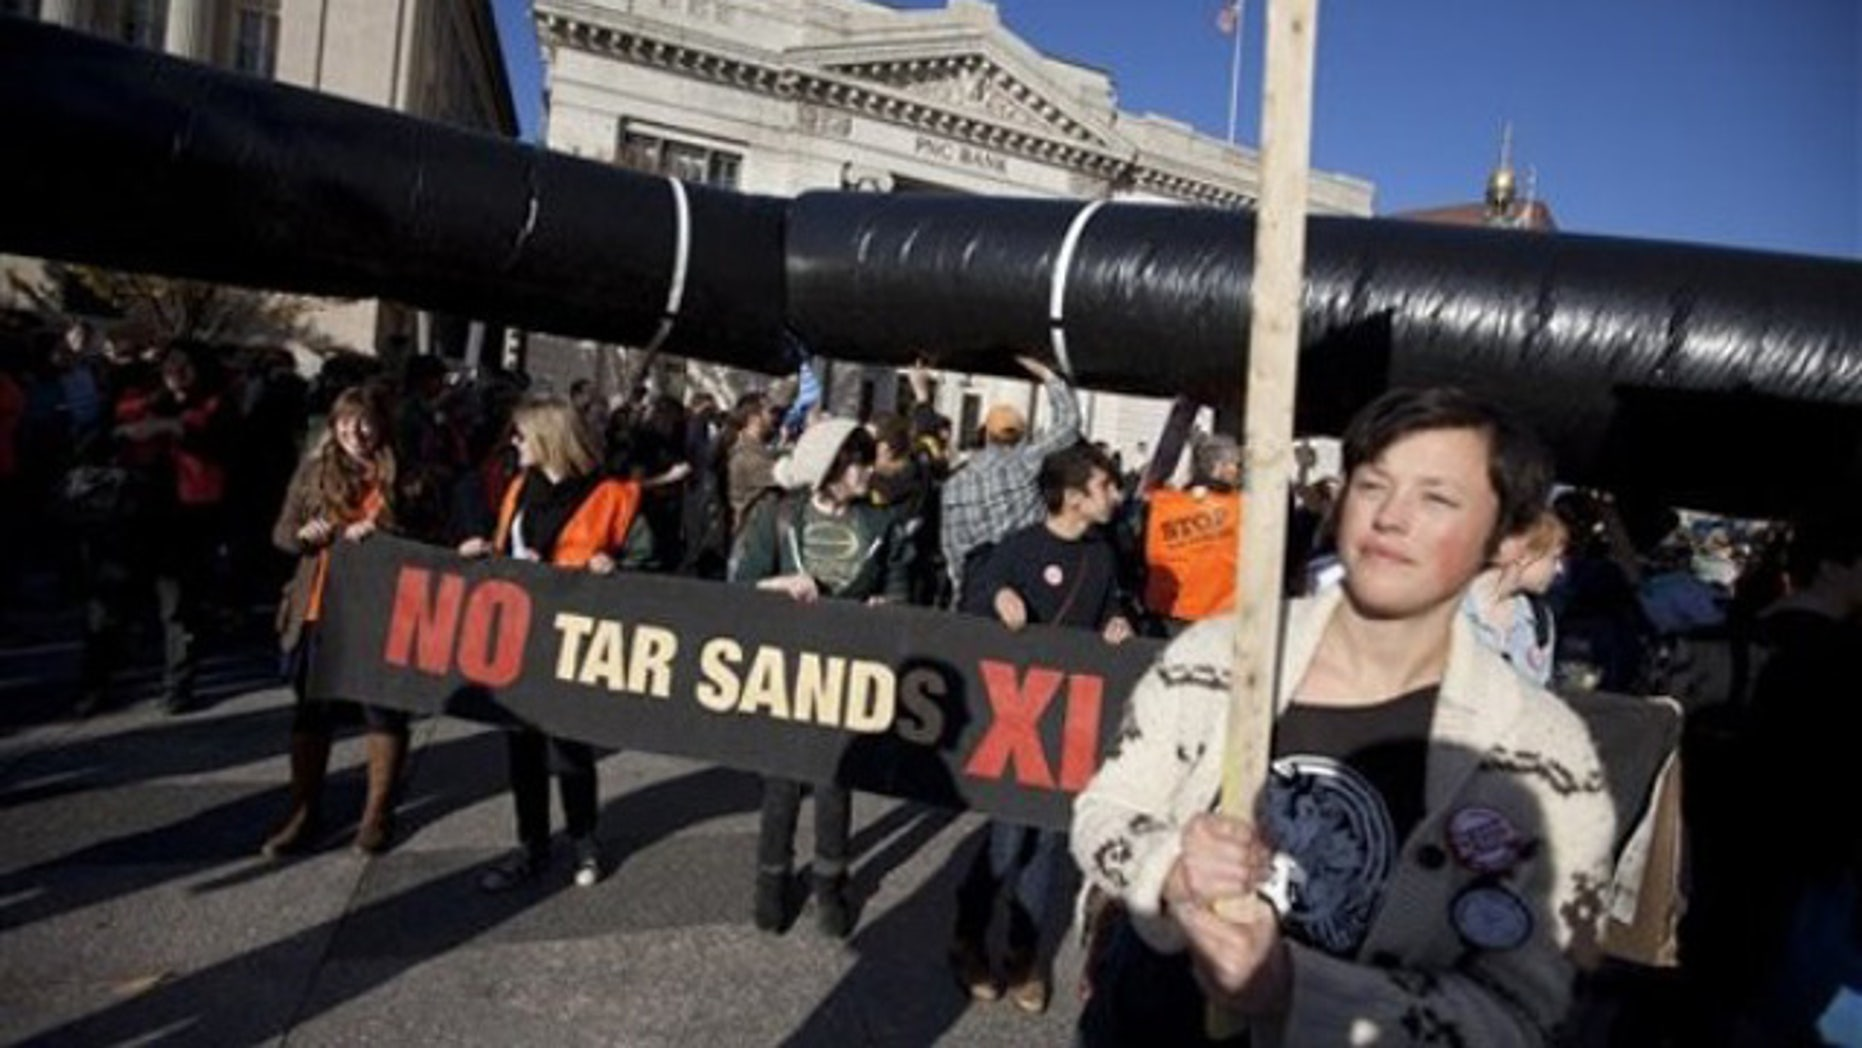 Nov. 6, 2011: Demonstrators march with a replica of a pipeline during a protest to demand a stop to the Keystone XL tar sands oil pipeline in Washington, D.C.